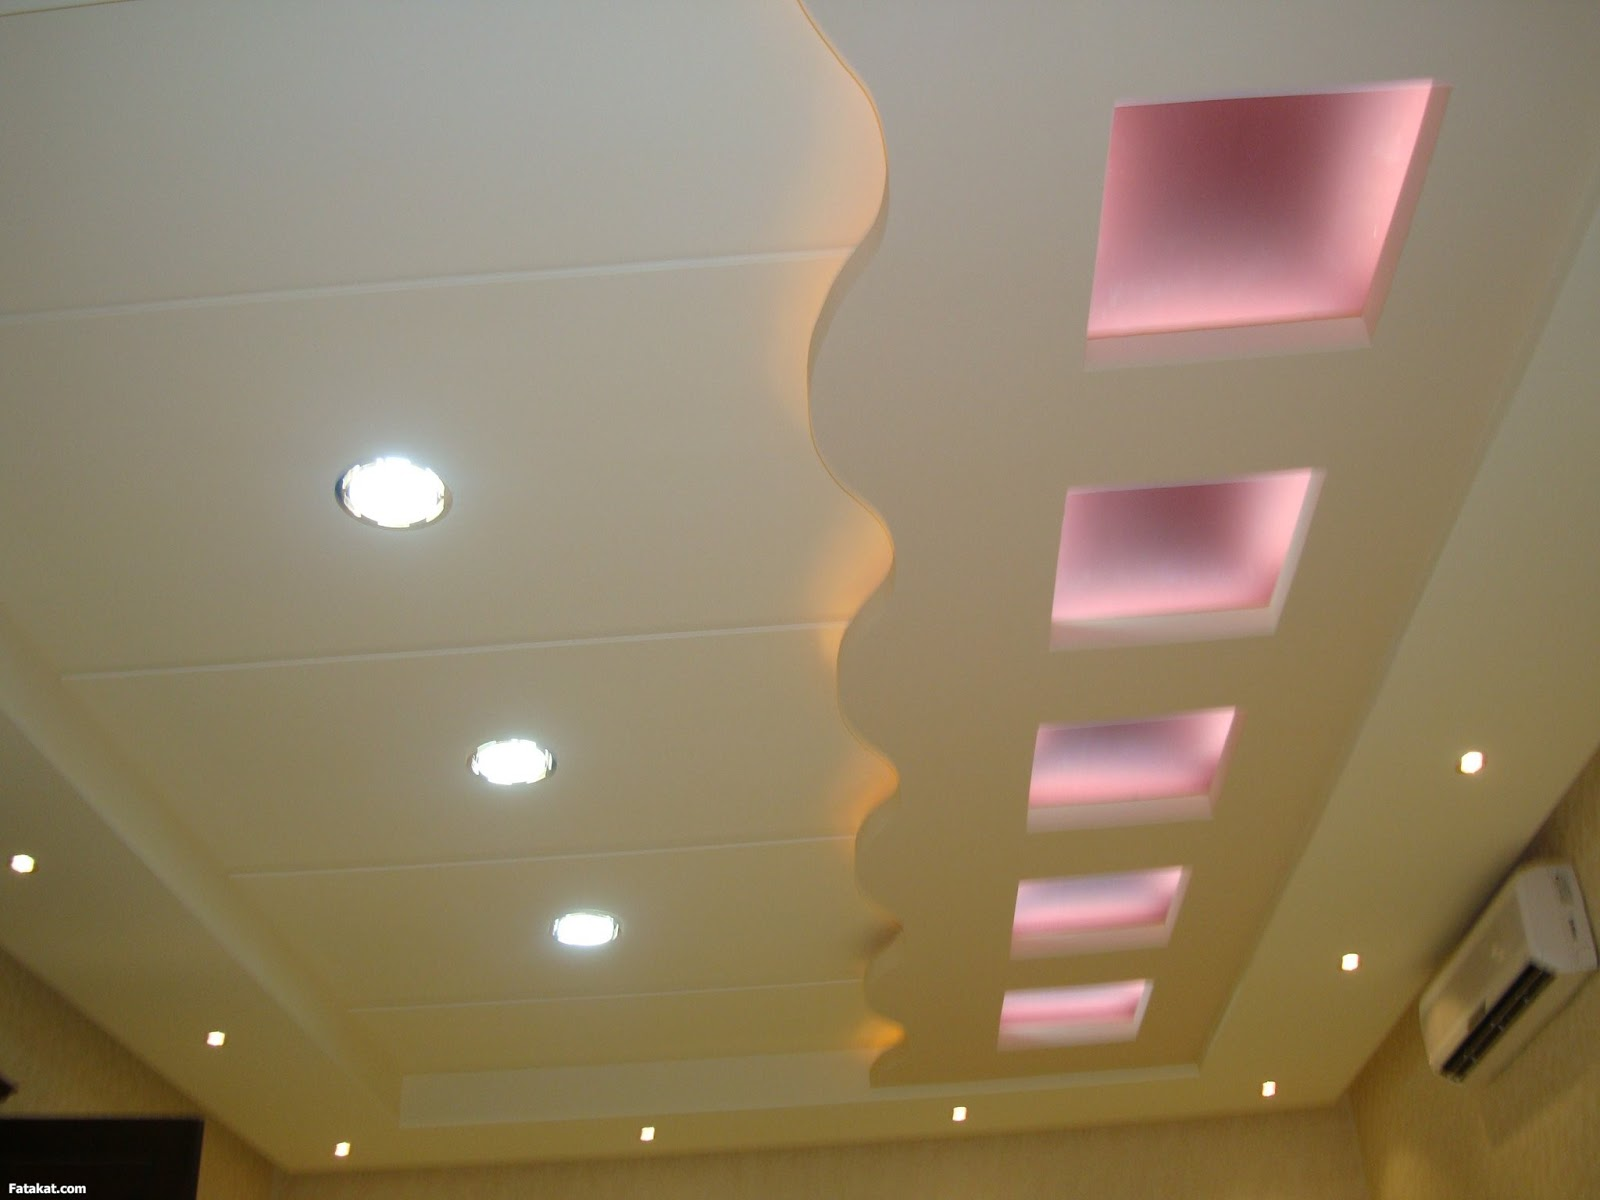 ApartmentsAstonishing Latest False Ceiling Designs Gypsum Board Types Of  For Office Astonishing Latest False Ceiling Designs